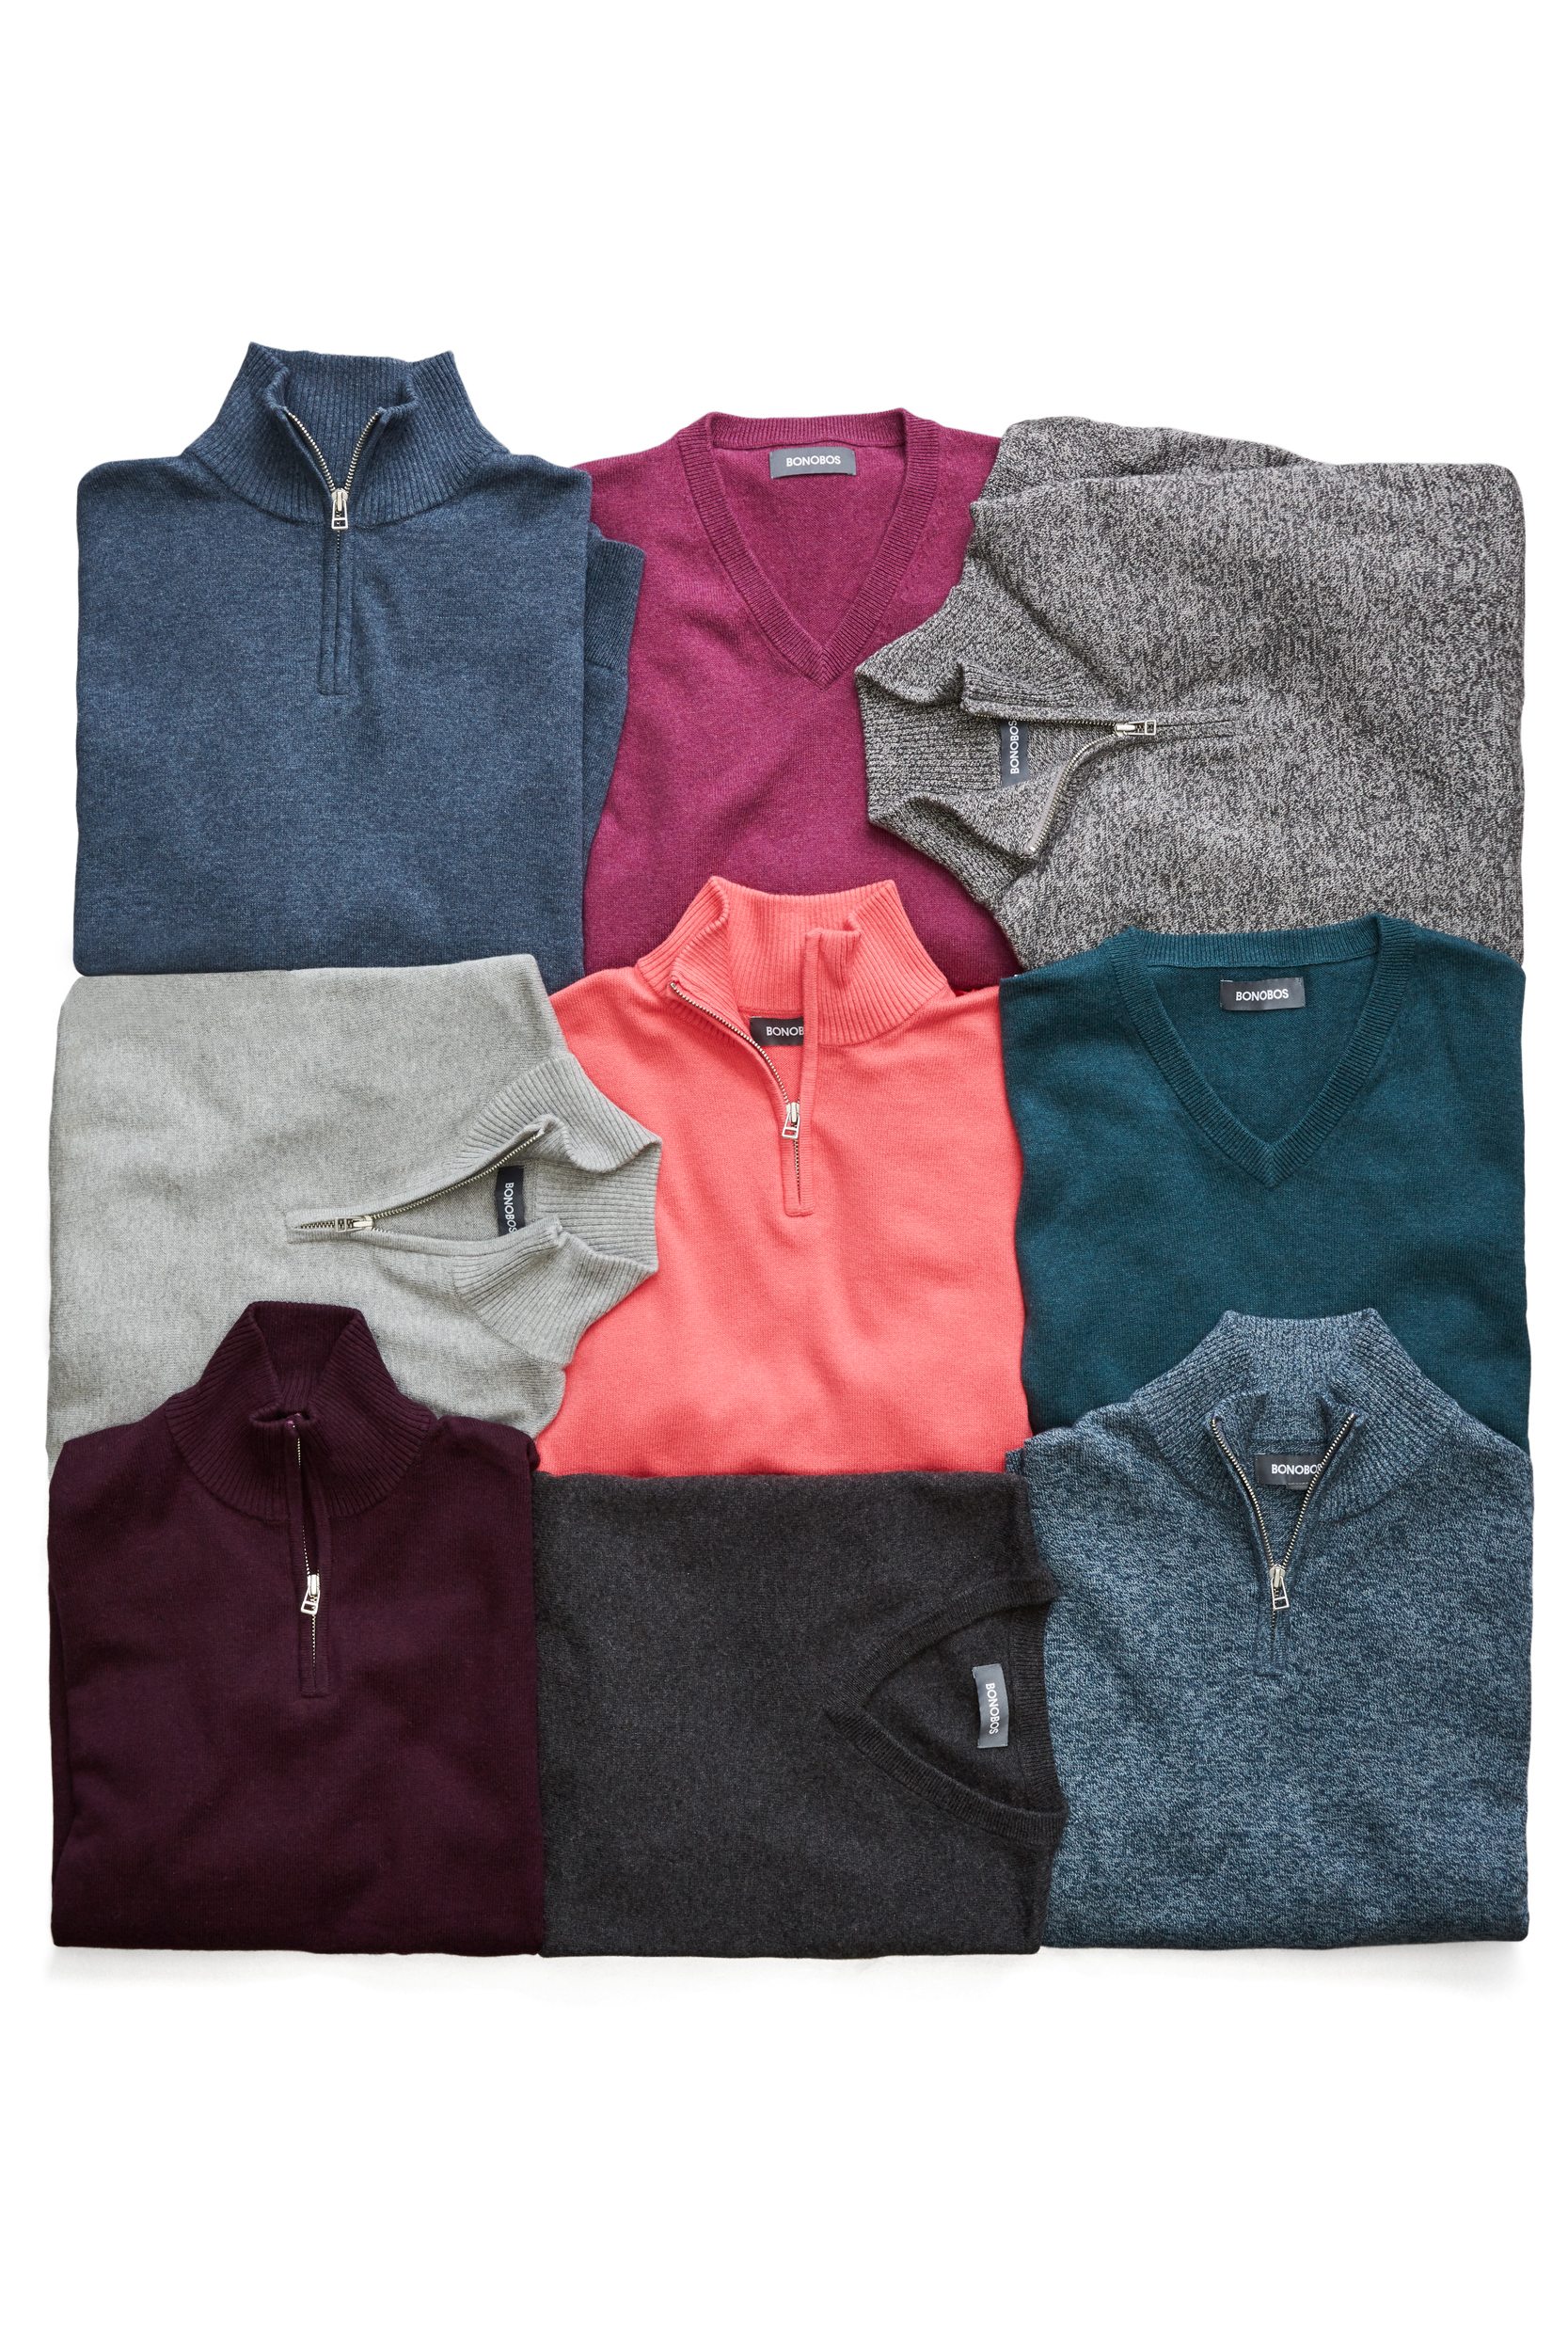 Cotton_Cashmere_038_v2.jpg